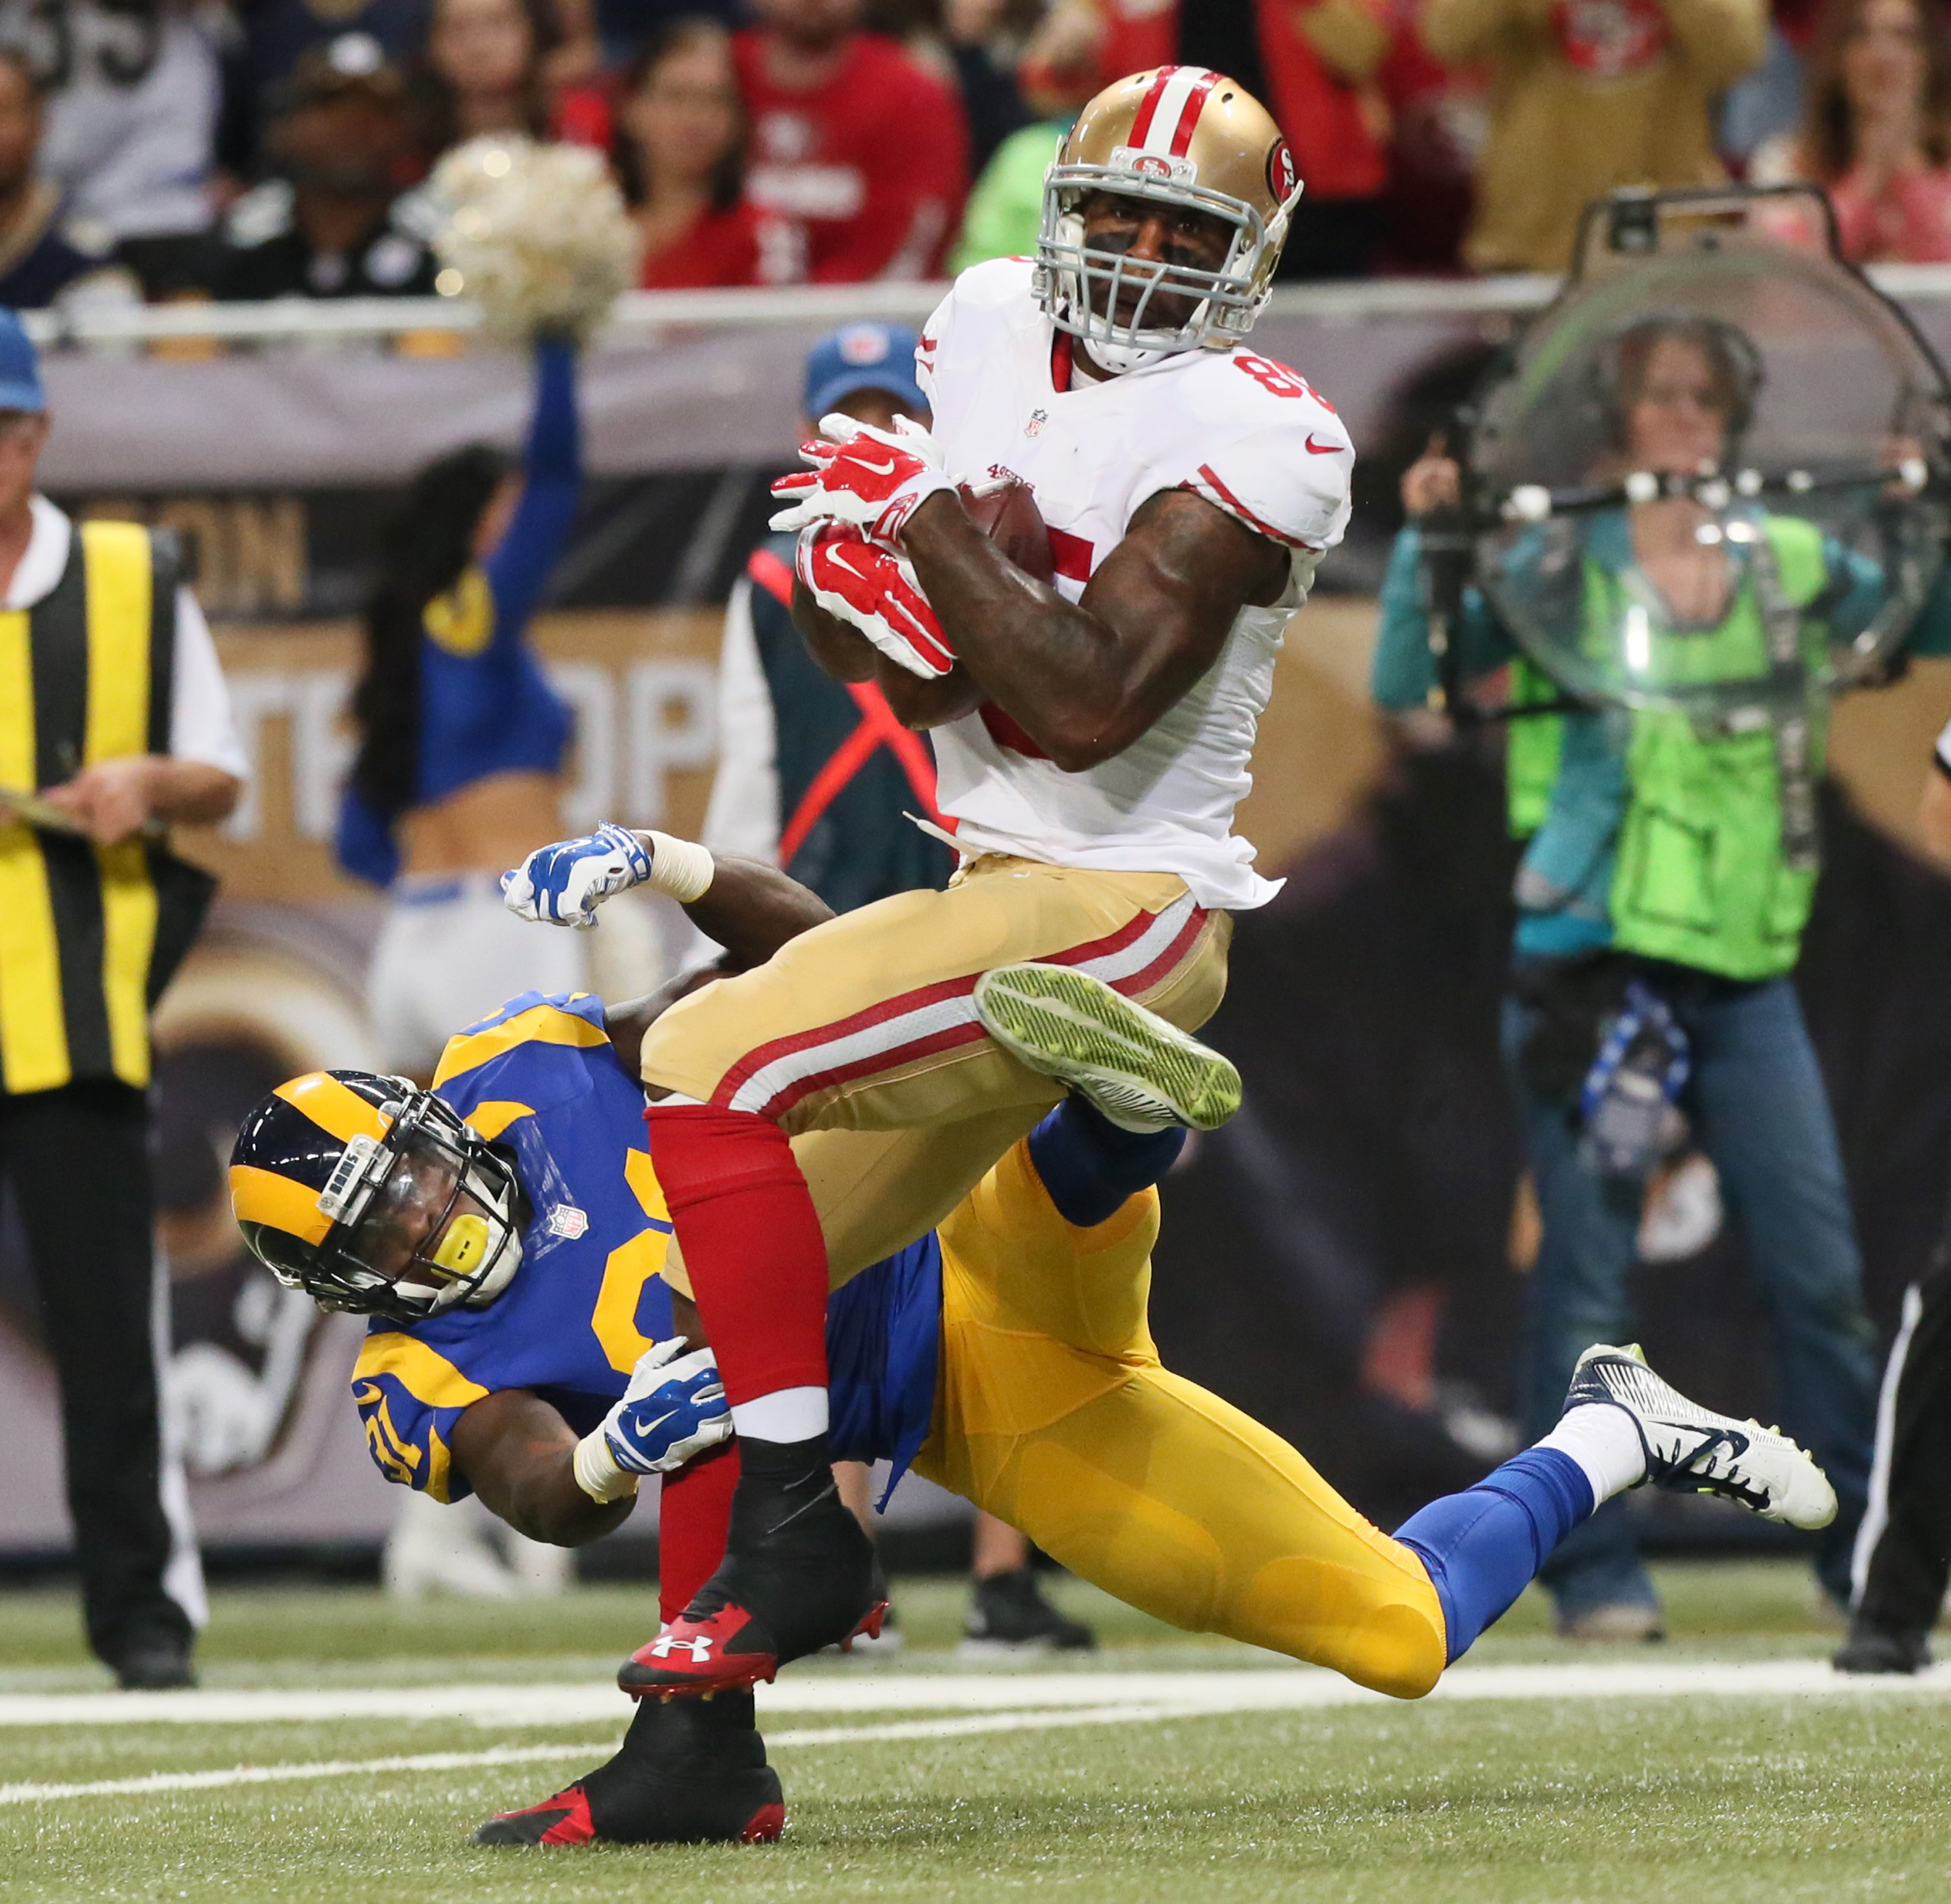 San Francisco 49ers tight end Vernon Davis tries to break free of a tackle by St. Louis Rams safety Maurice Alexander on a reception during an NFL football game Sunday, Nov. 1, 2015, in St. Louis. (Chris Lee/St. Louis Post-Dispatch via AP)  EDWARDSVILLE I